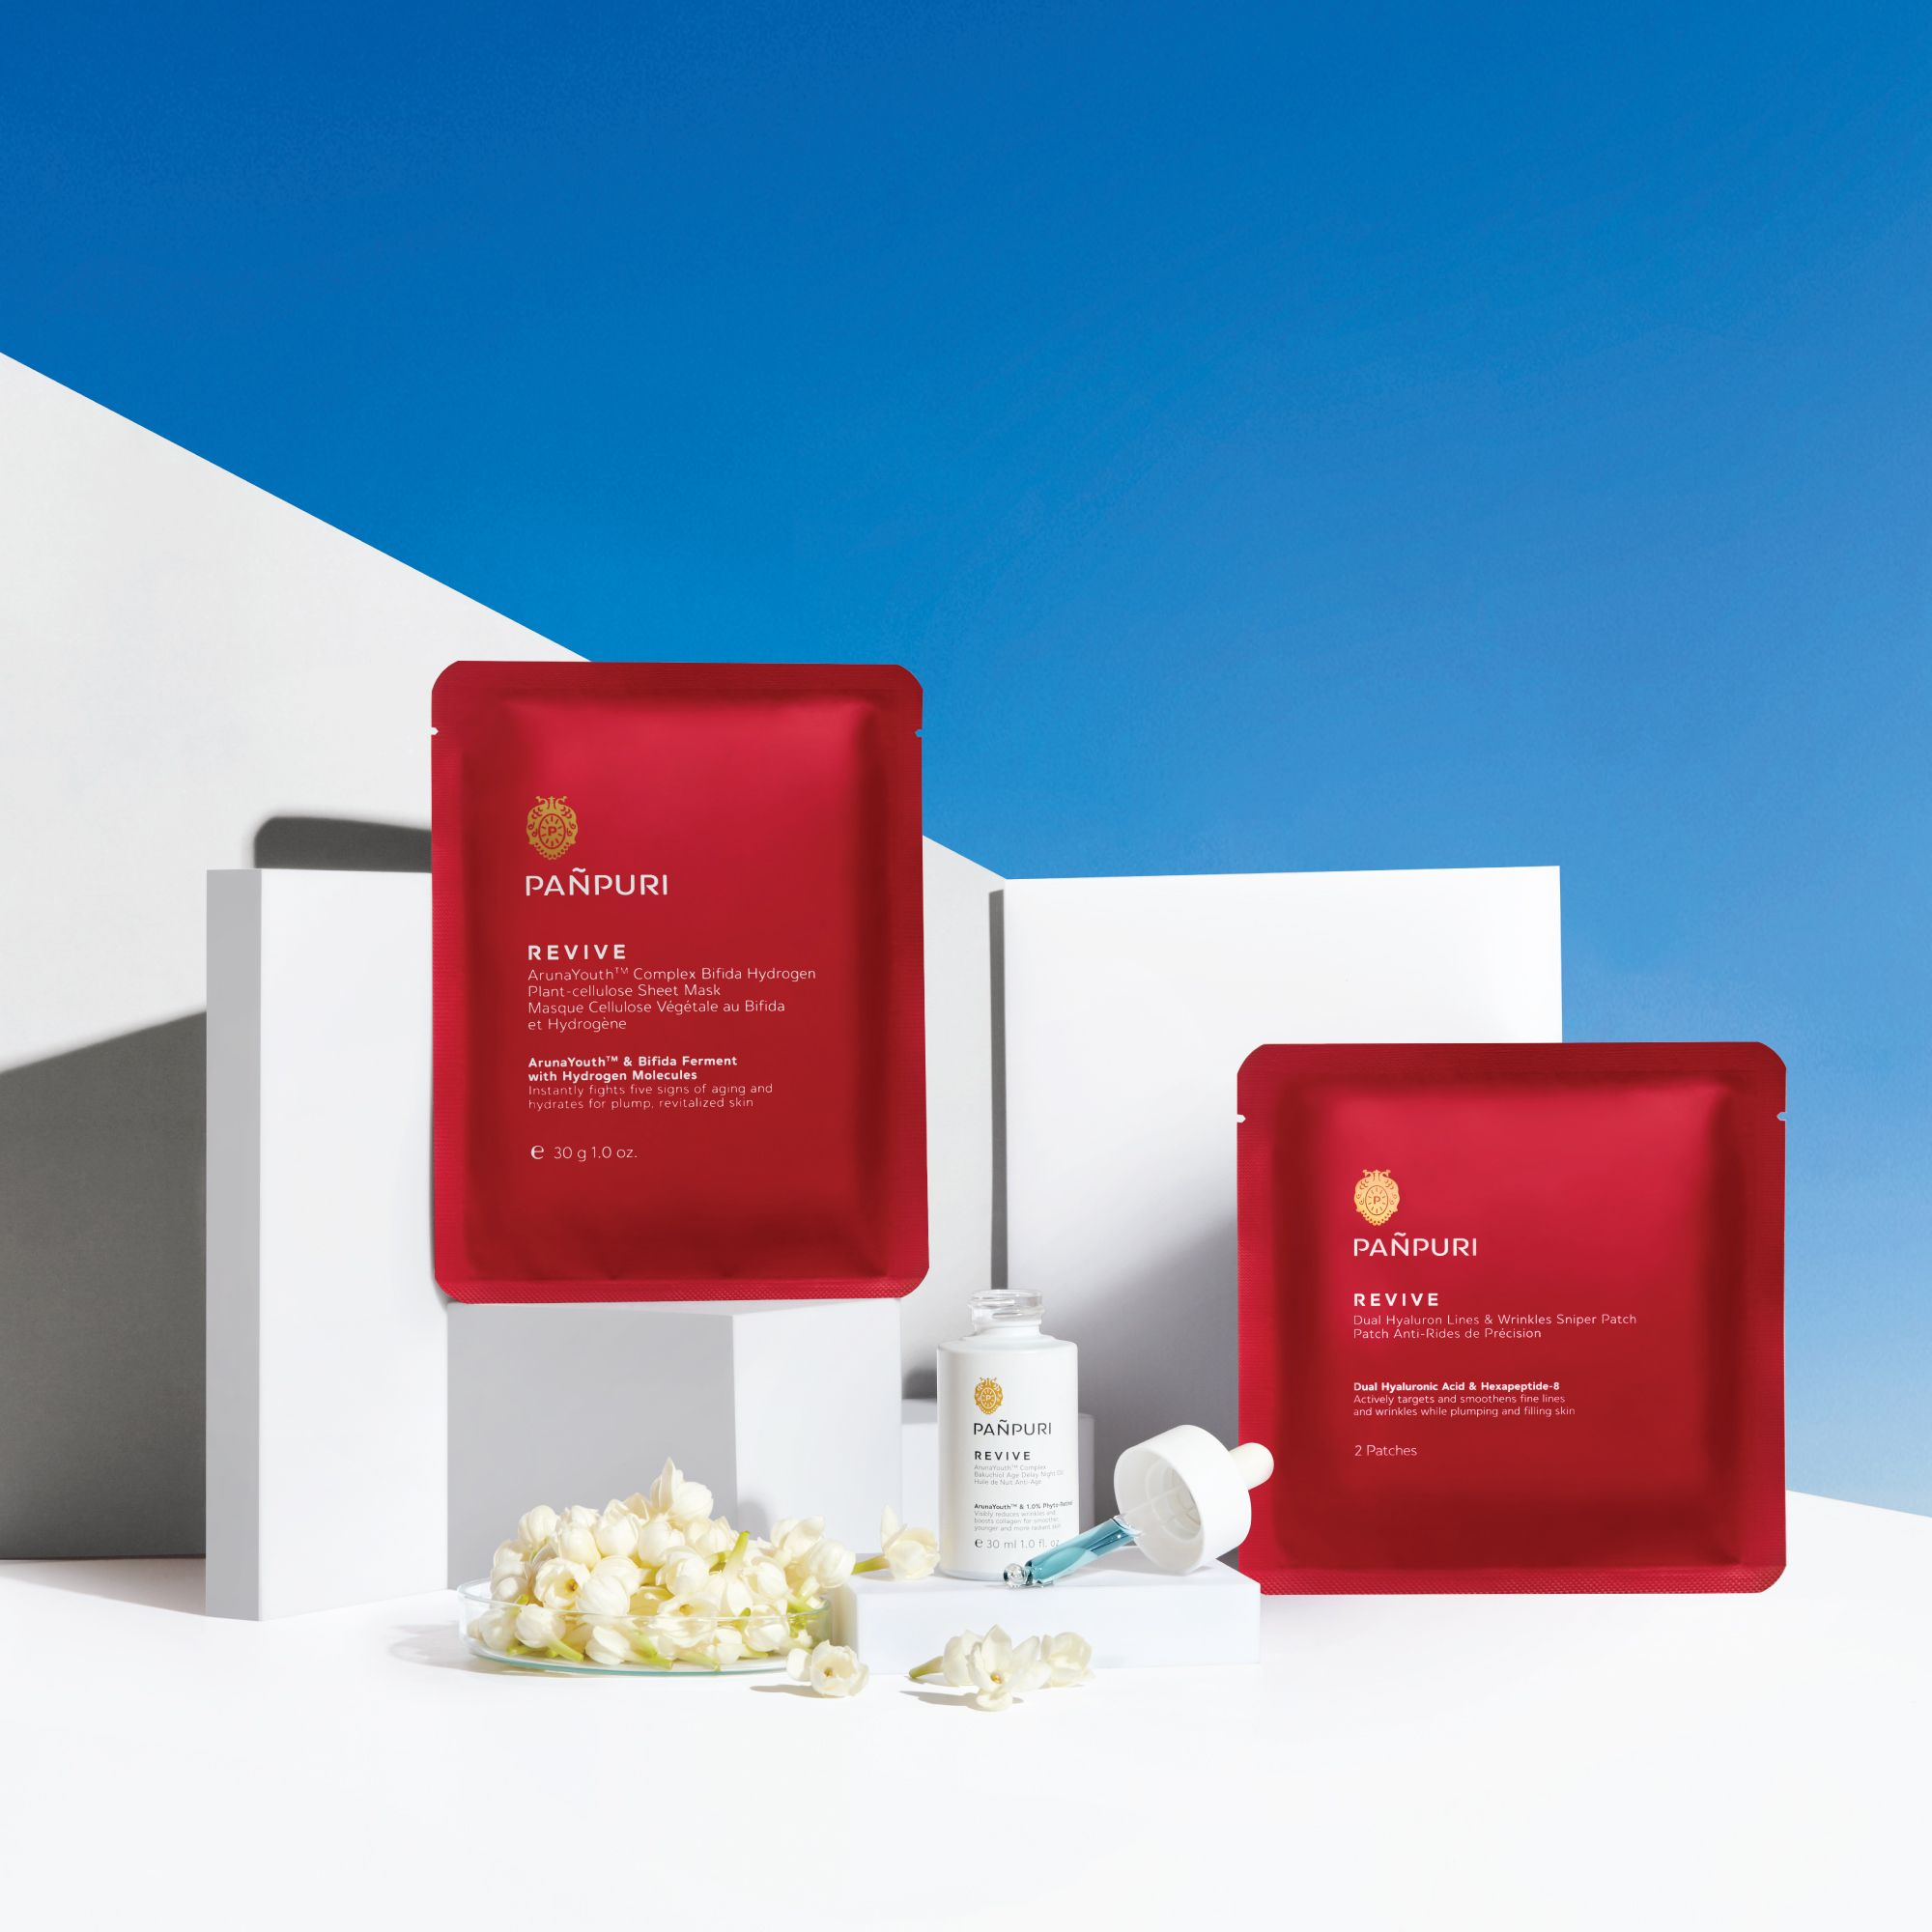 New Sheet Masks From Panpuri To Revive You From Signs Of Aging